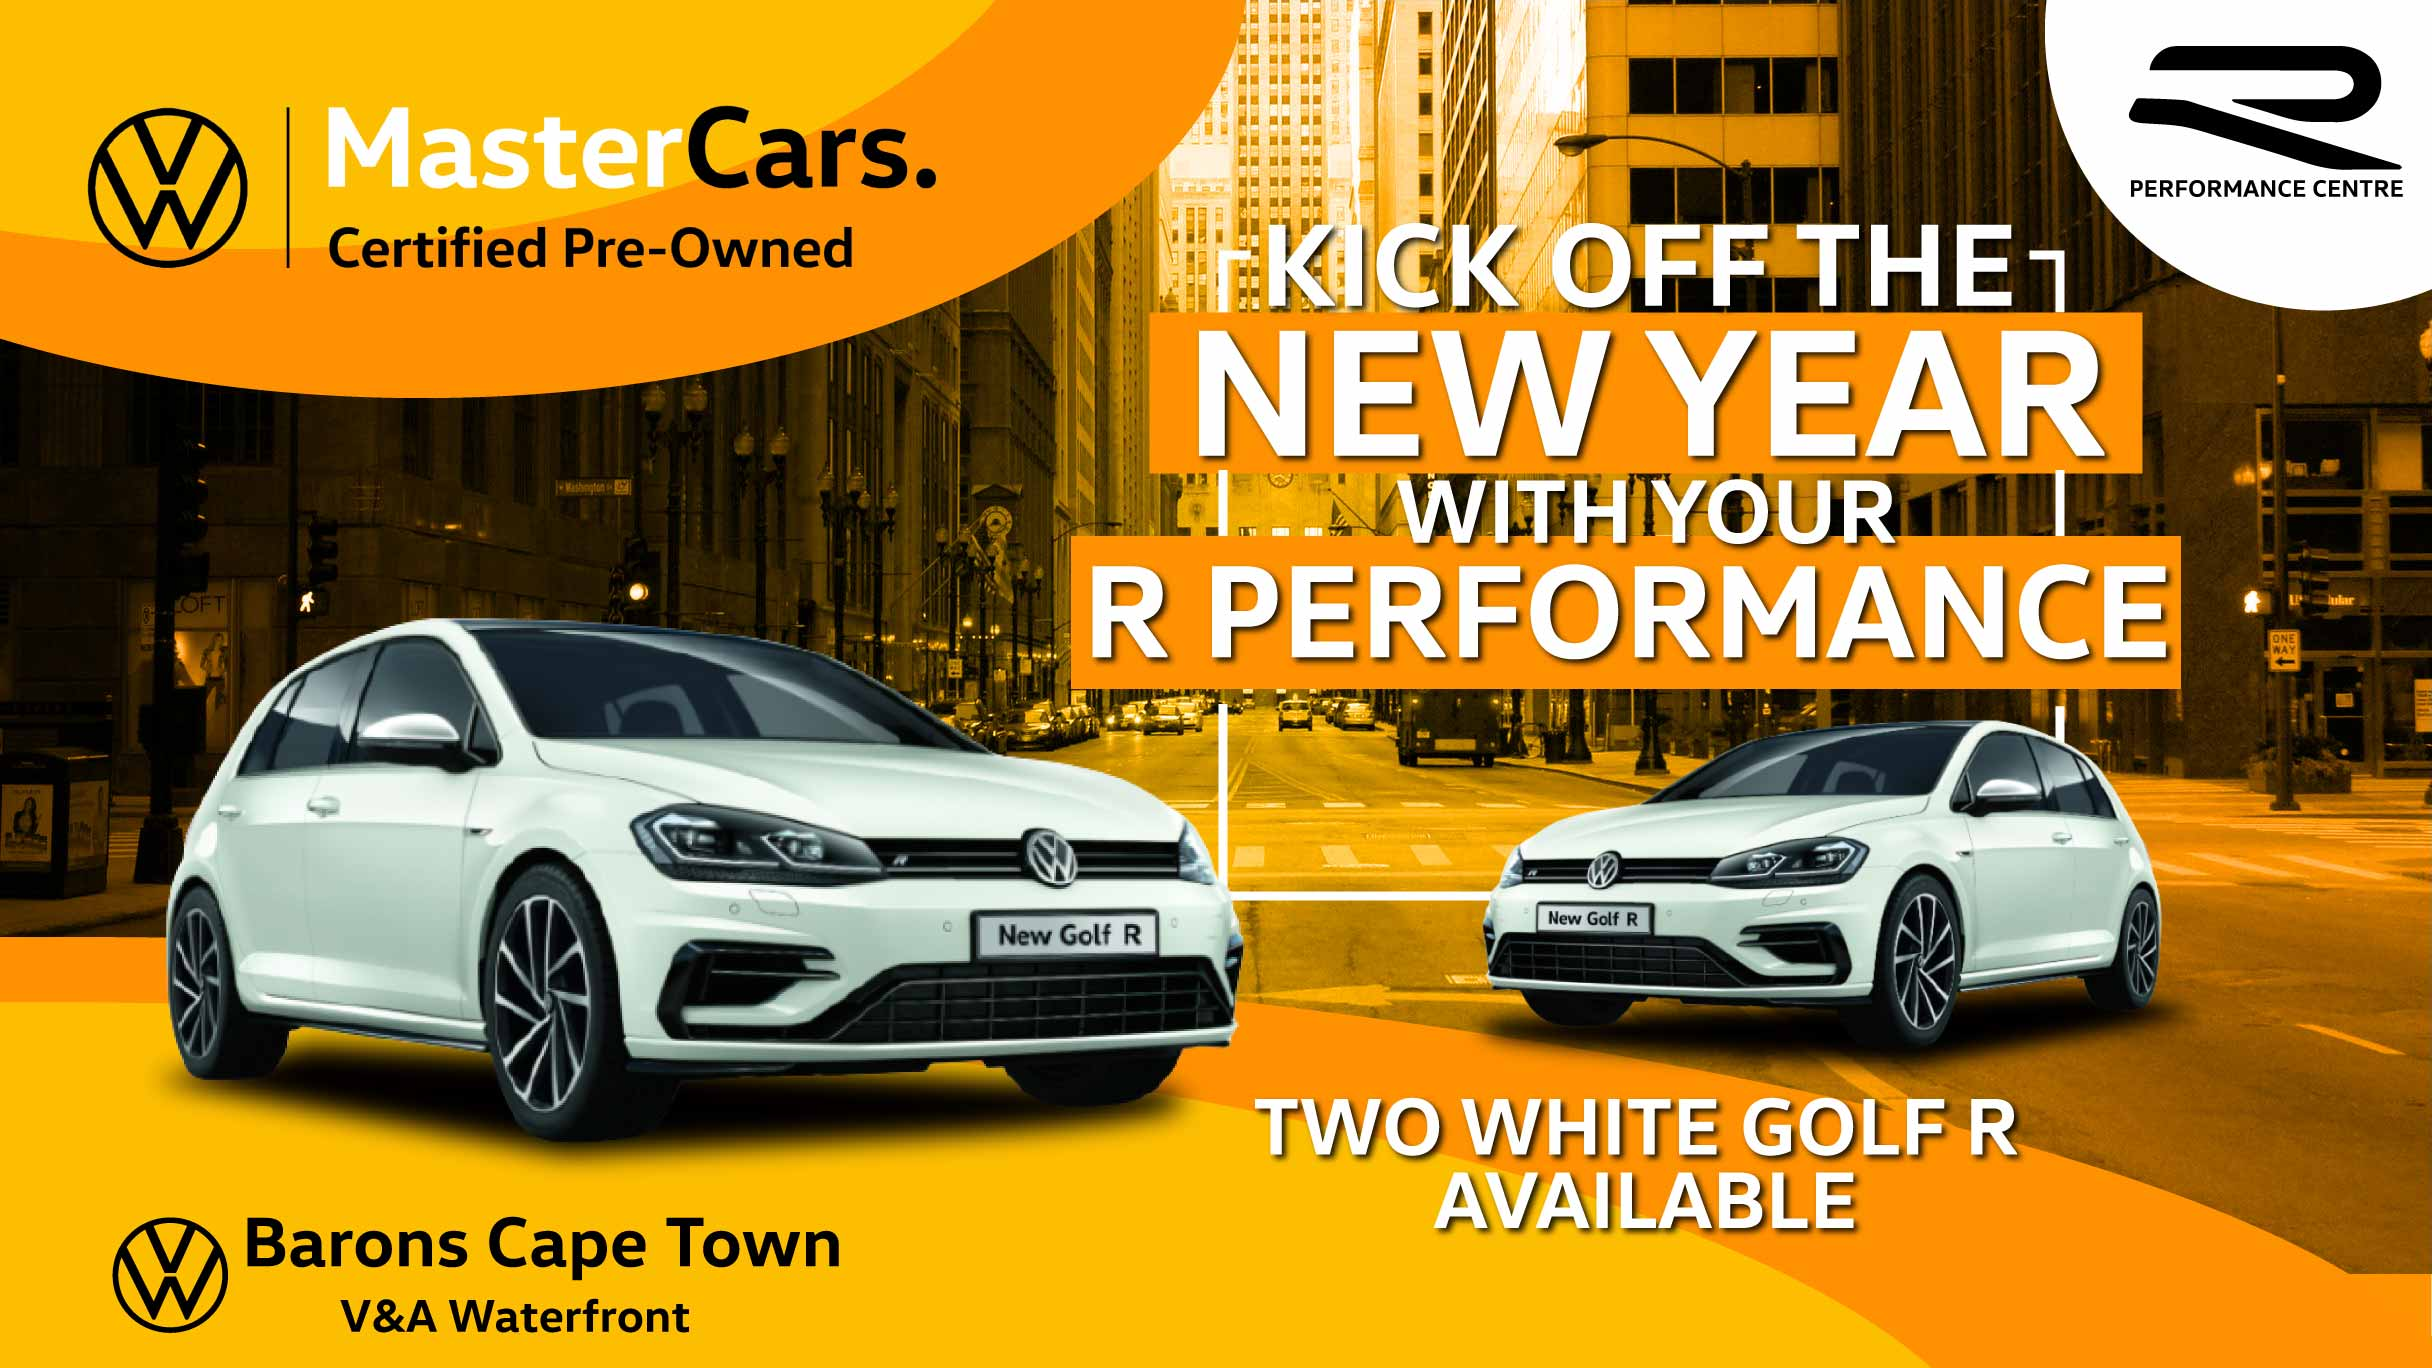 Barons Cape Town performance car offers